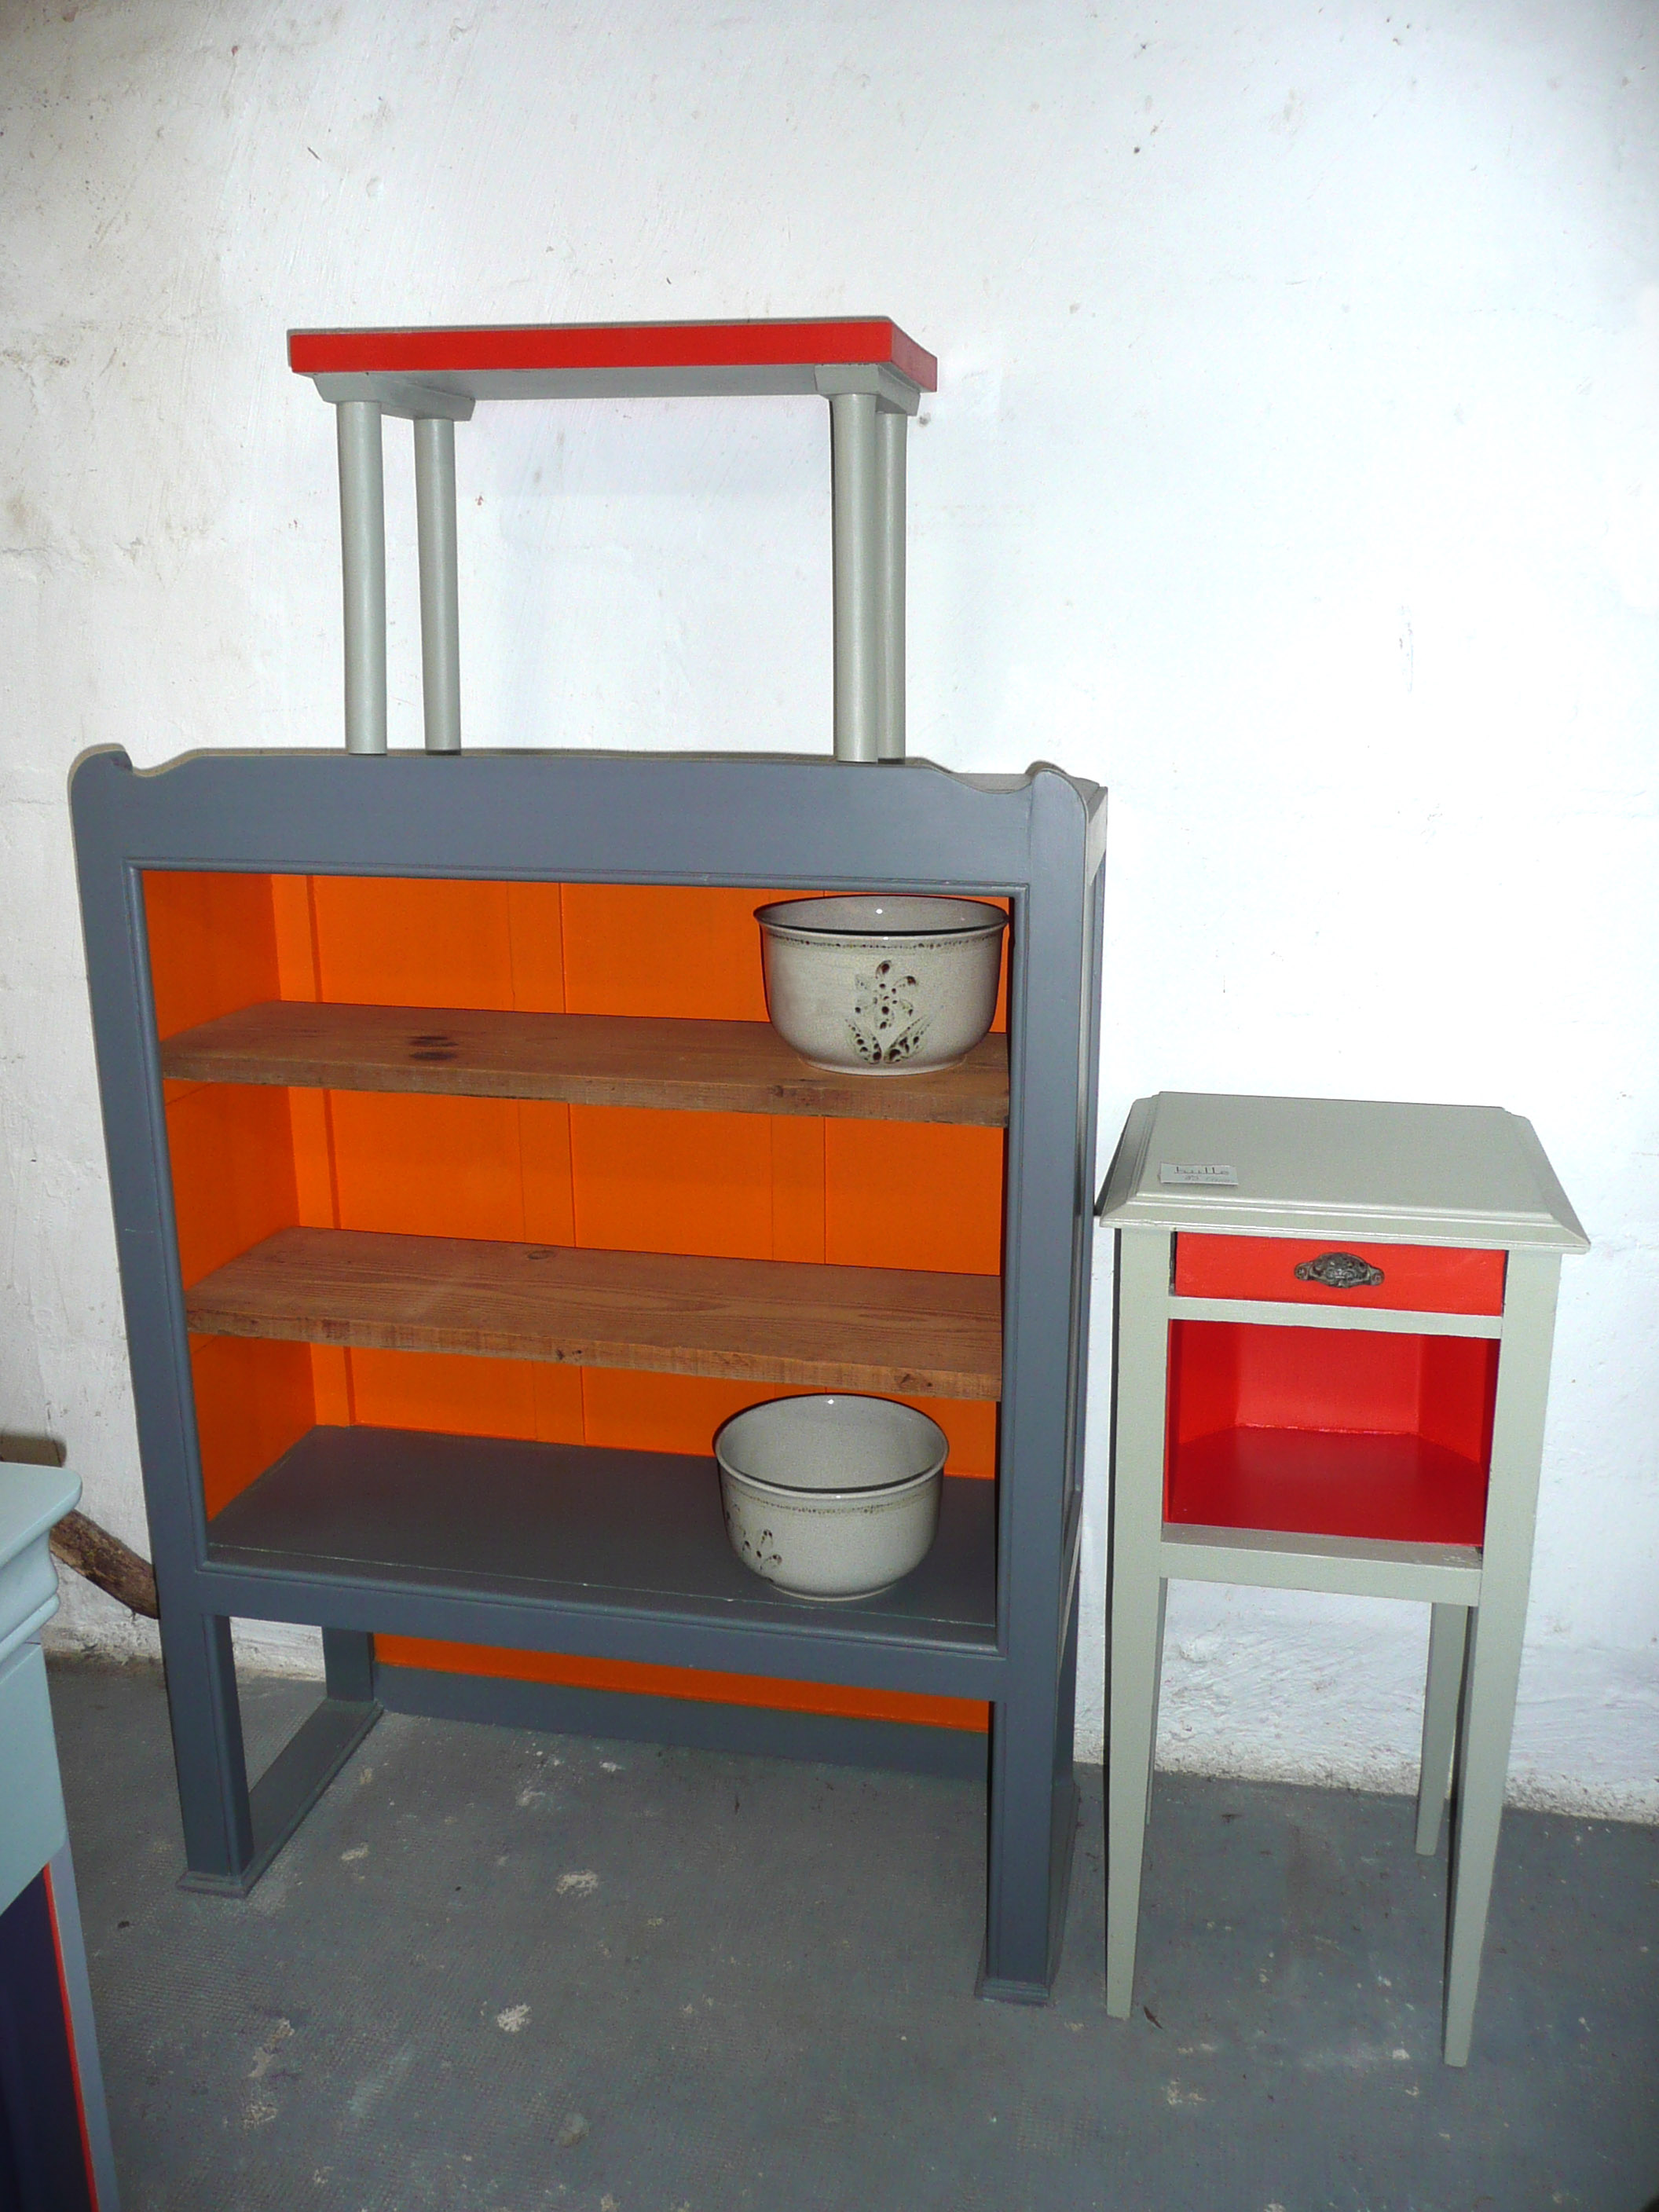 Upcycling rénovation de meubles